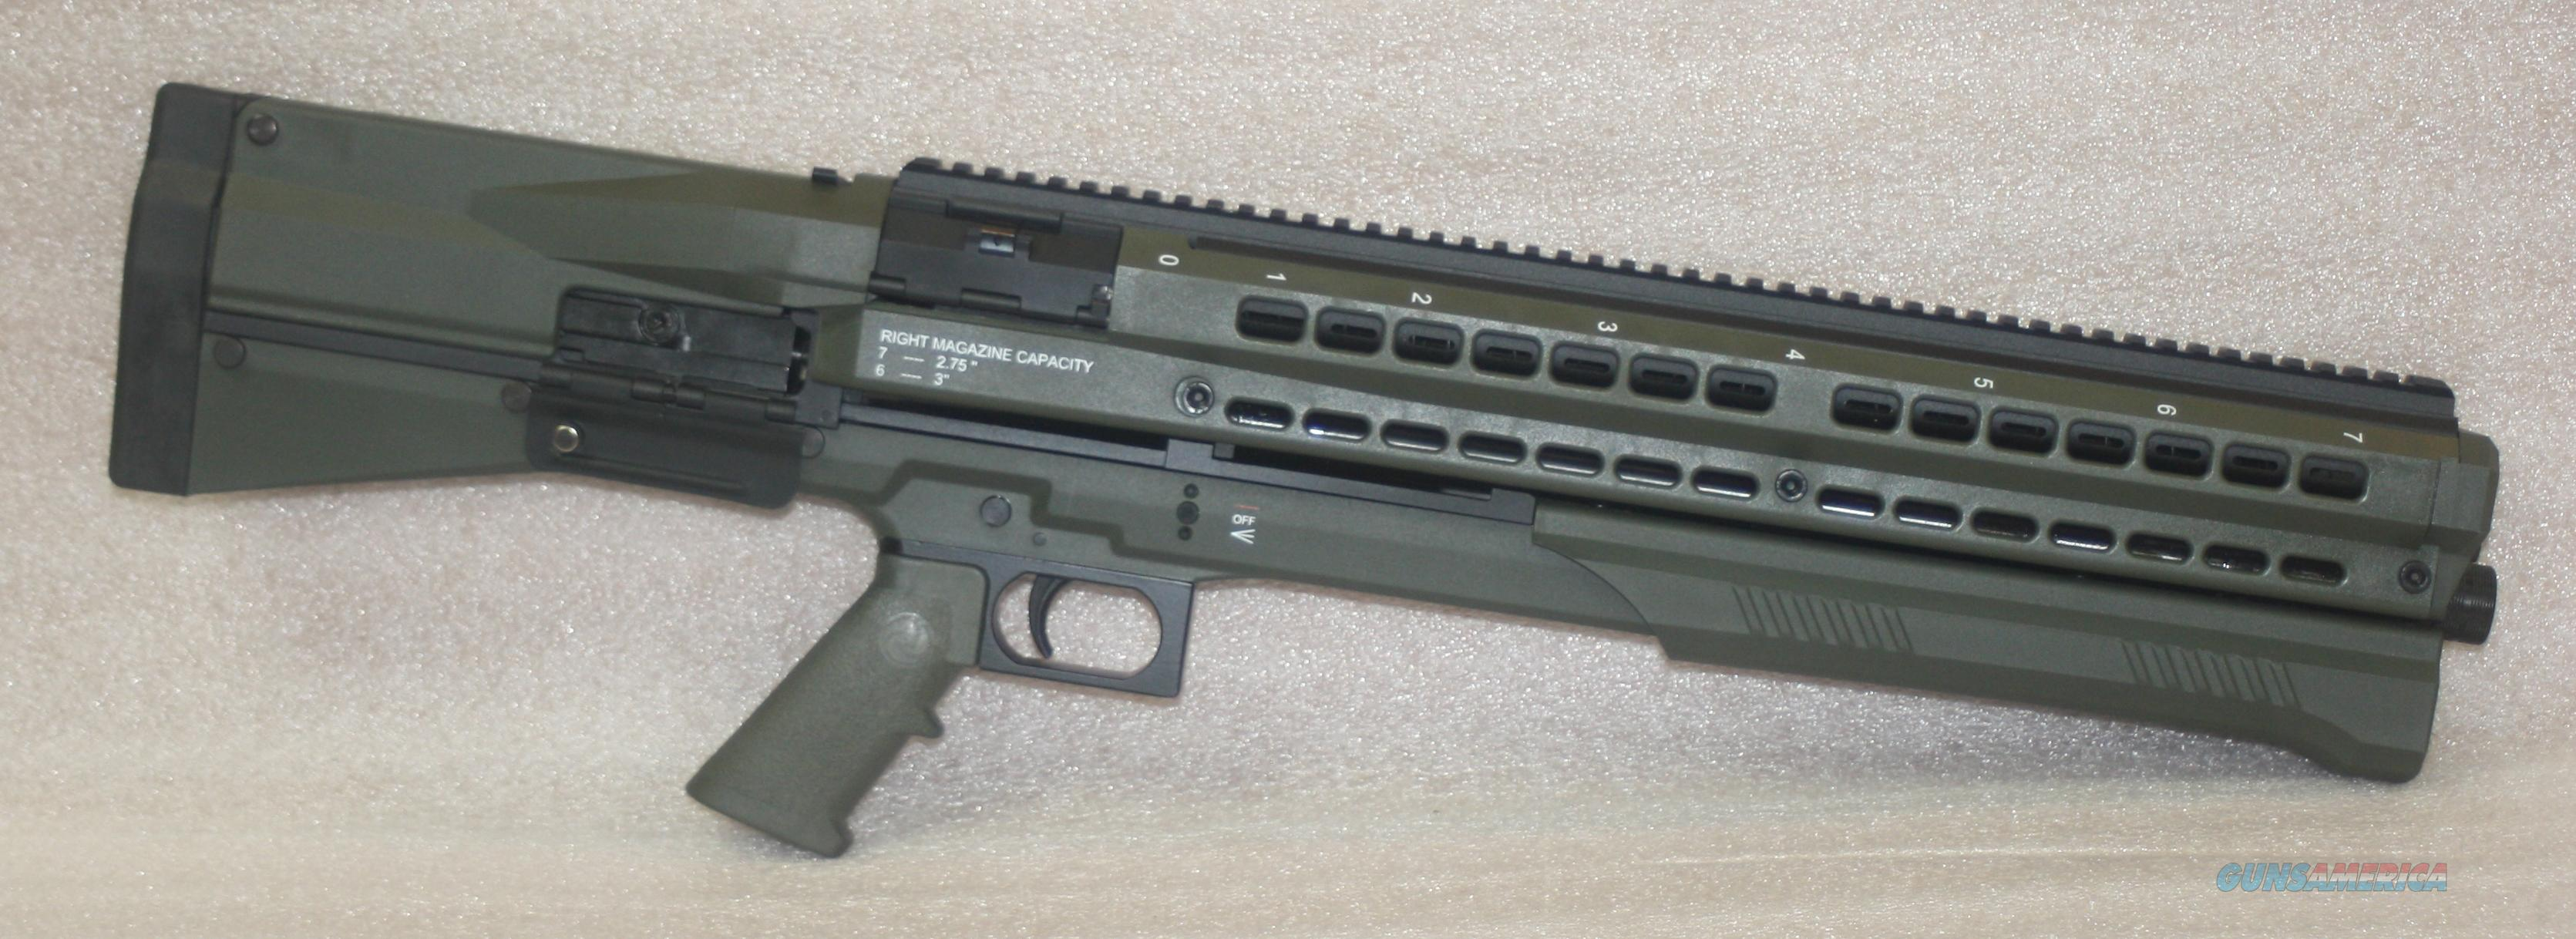 UTAS PS1OD1 12 GA SHOTGUN OD GREEN  Guns > Shotguns > A Misc Shotguns